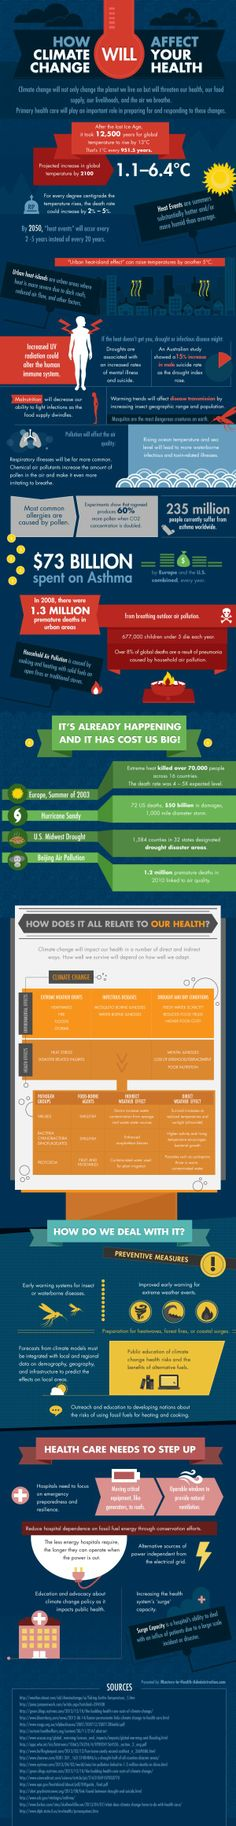 Here's an amazing Infographic on Climate change and its relationship to health.